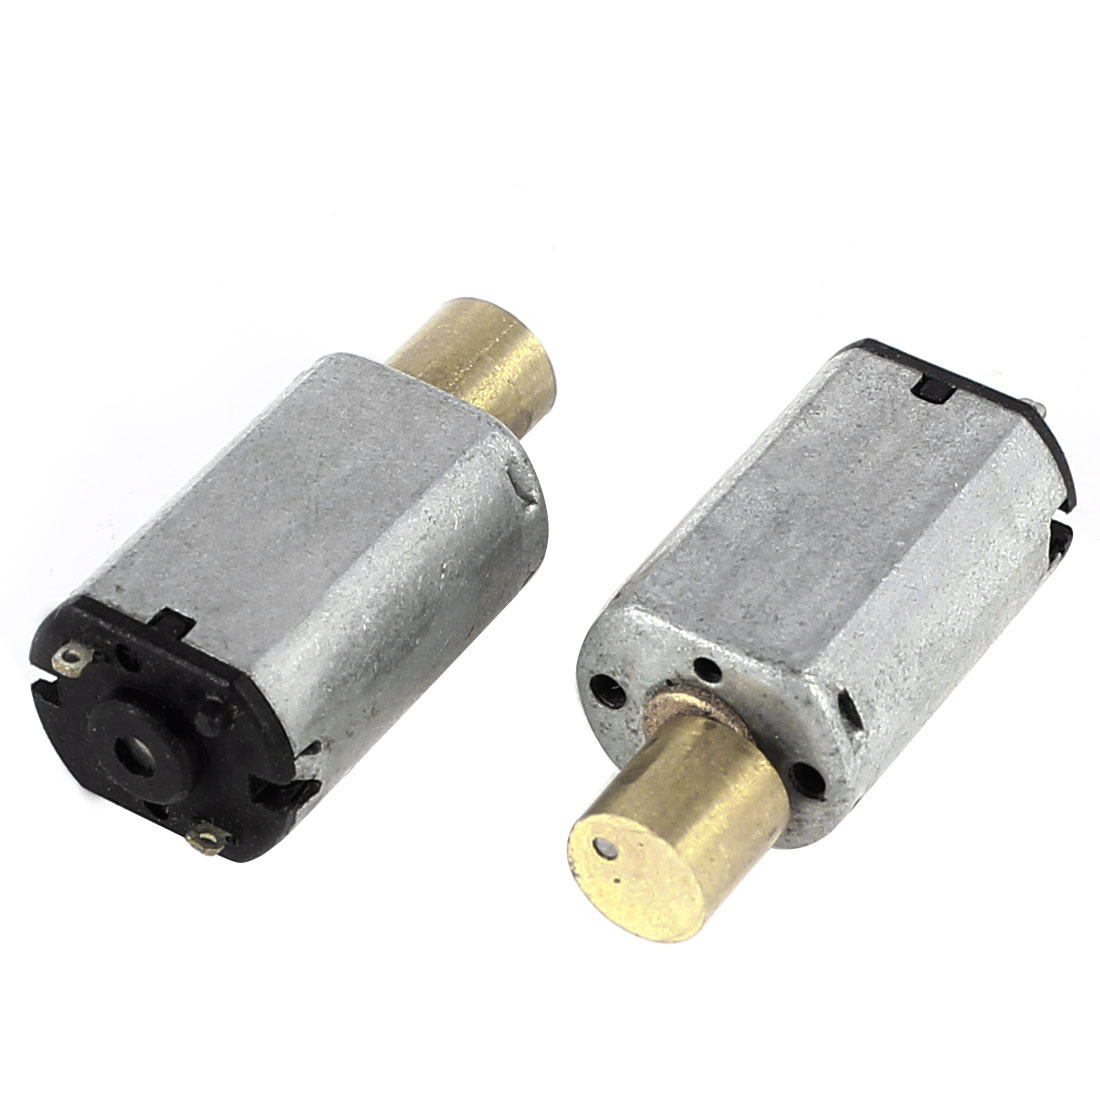 2 Pcs Mini Vibration Vibrating Electric Motor DC 1.5-4V 15000RPM M20 for Toys